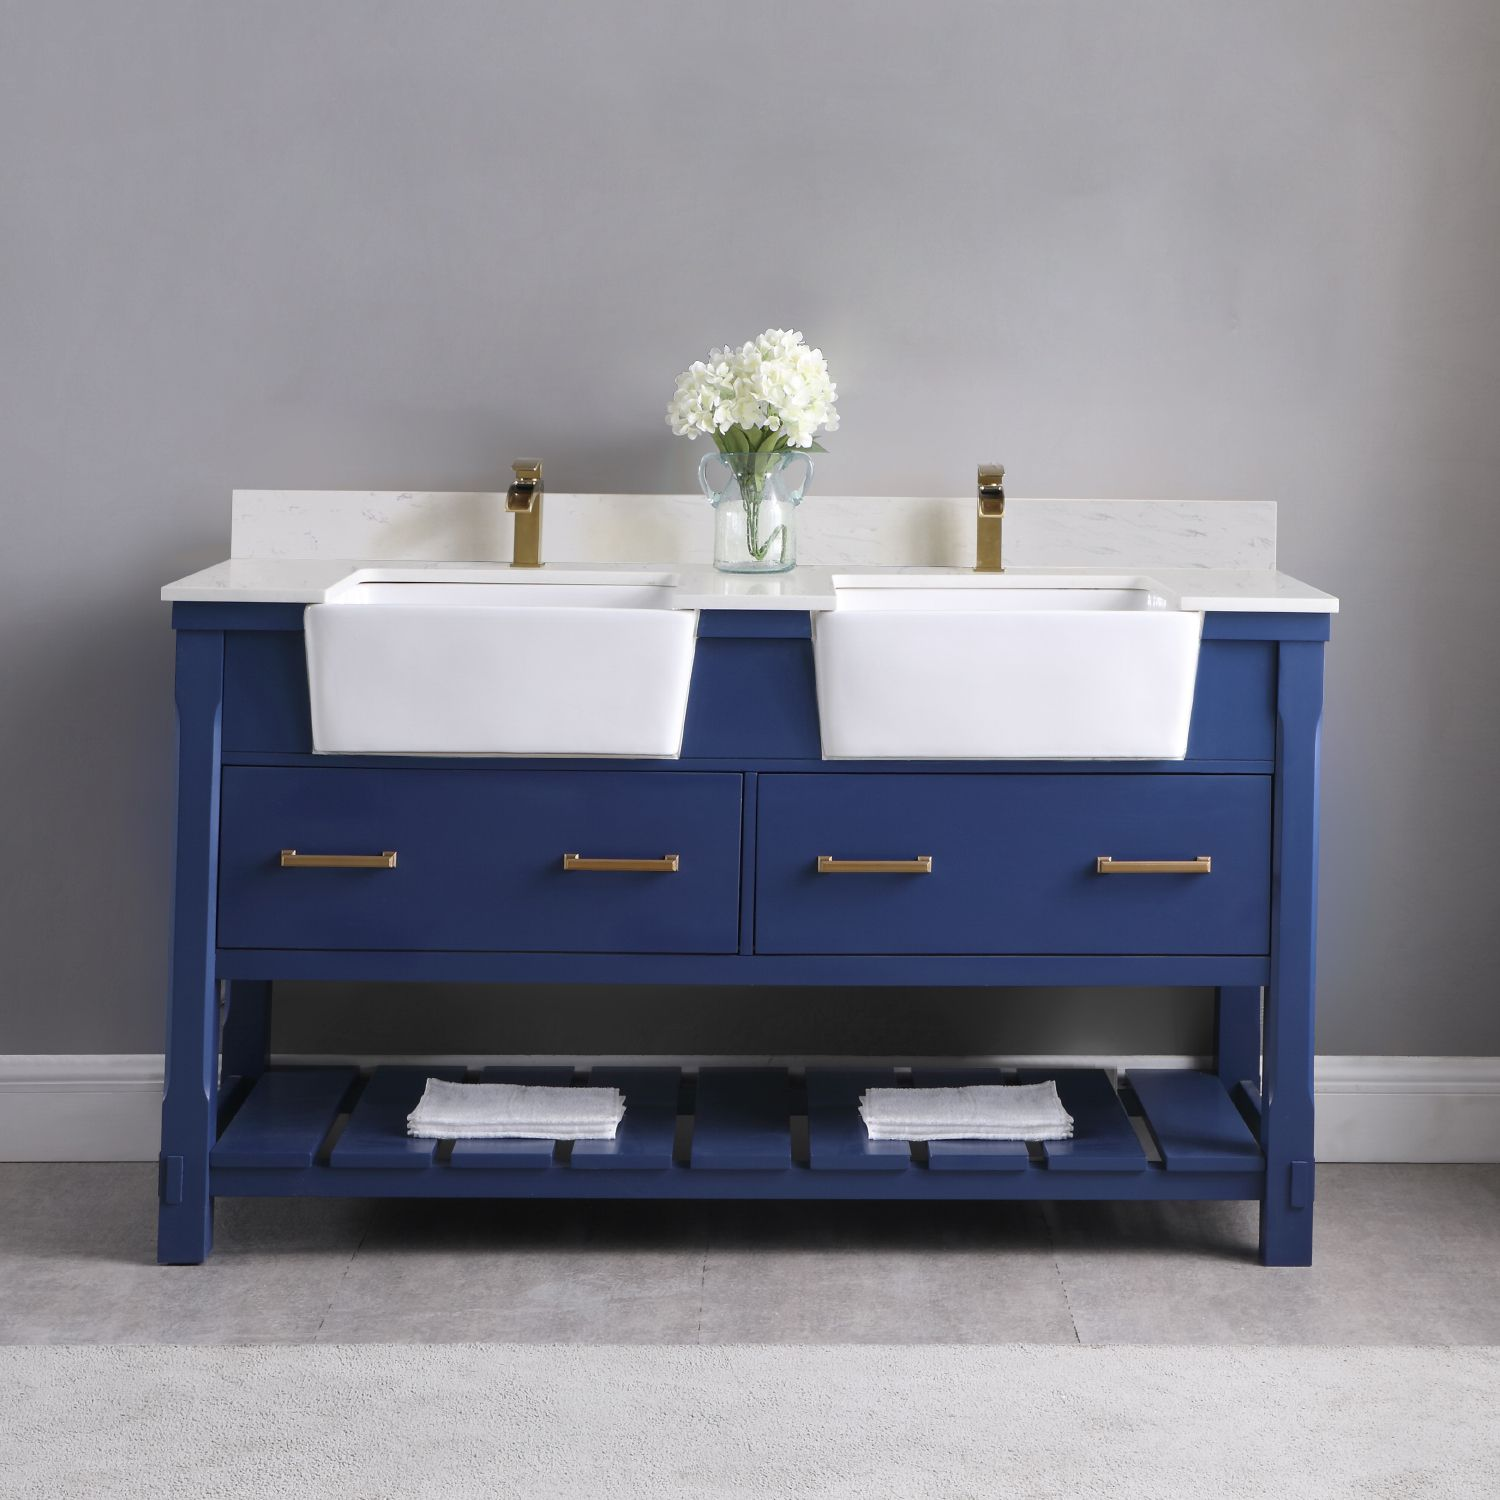 "Issac Edwards Collection 60"" Double Bathroom Vanity Set in Jewelry Blue and Composite Carrara White Stone Top with White Farmhouse Basin without Mirror"